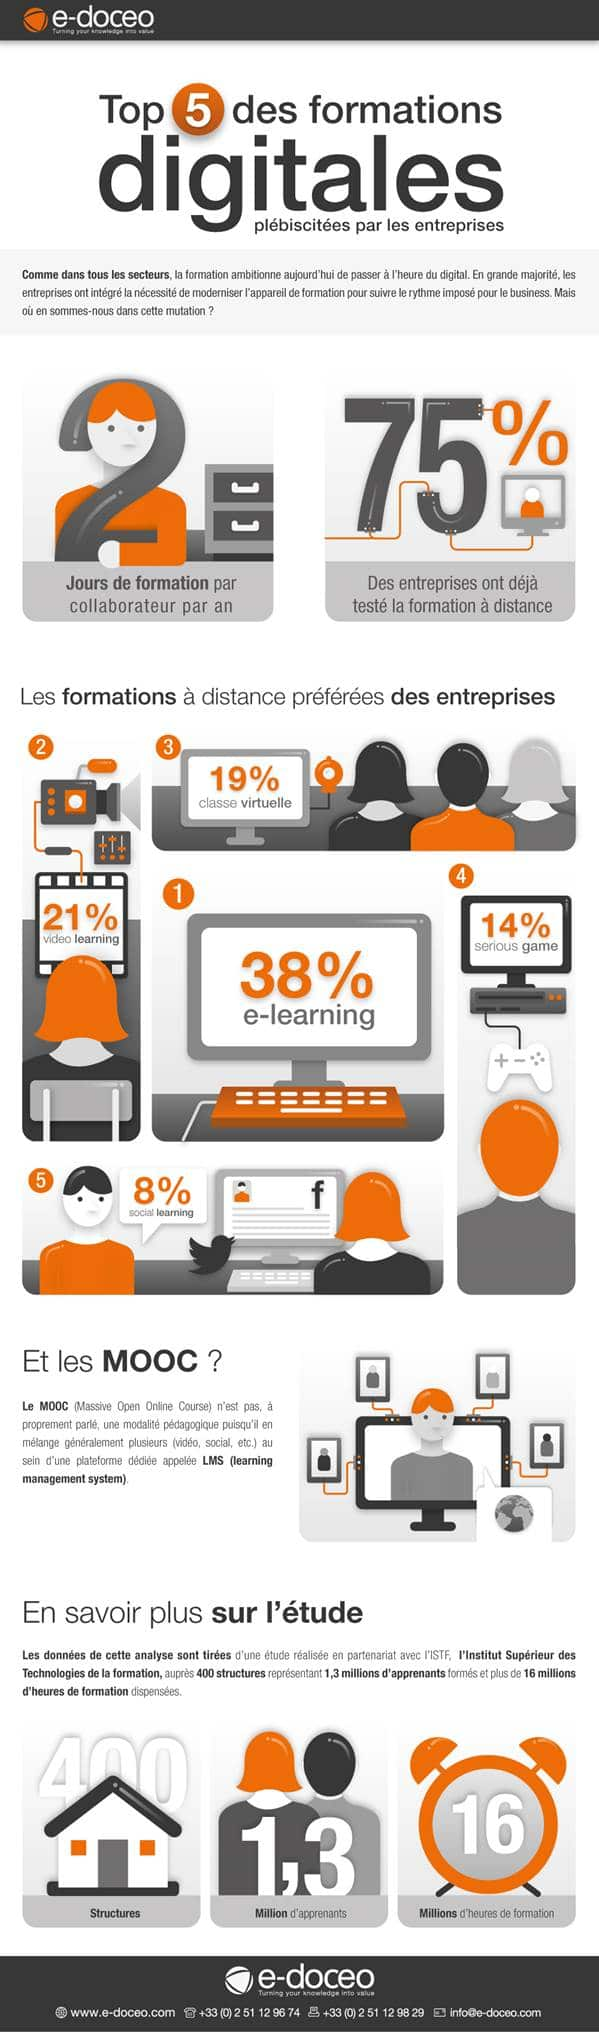 infographie formations digitales